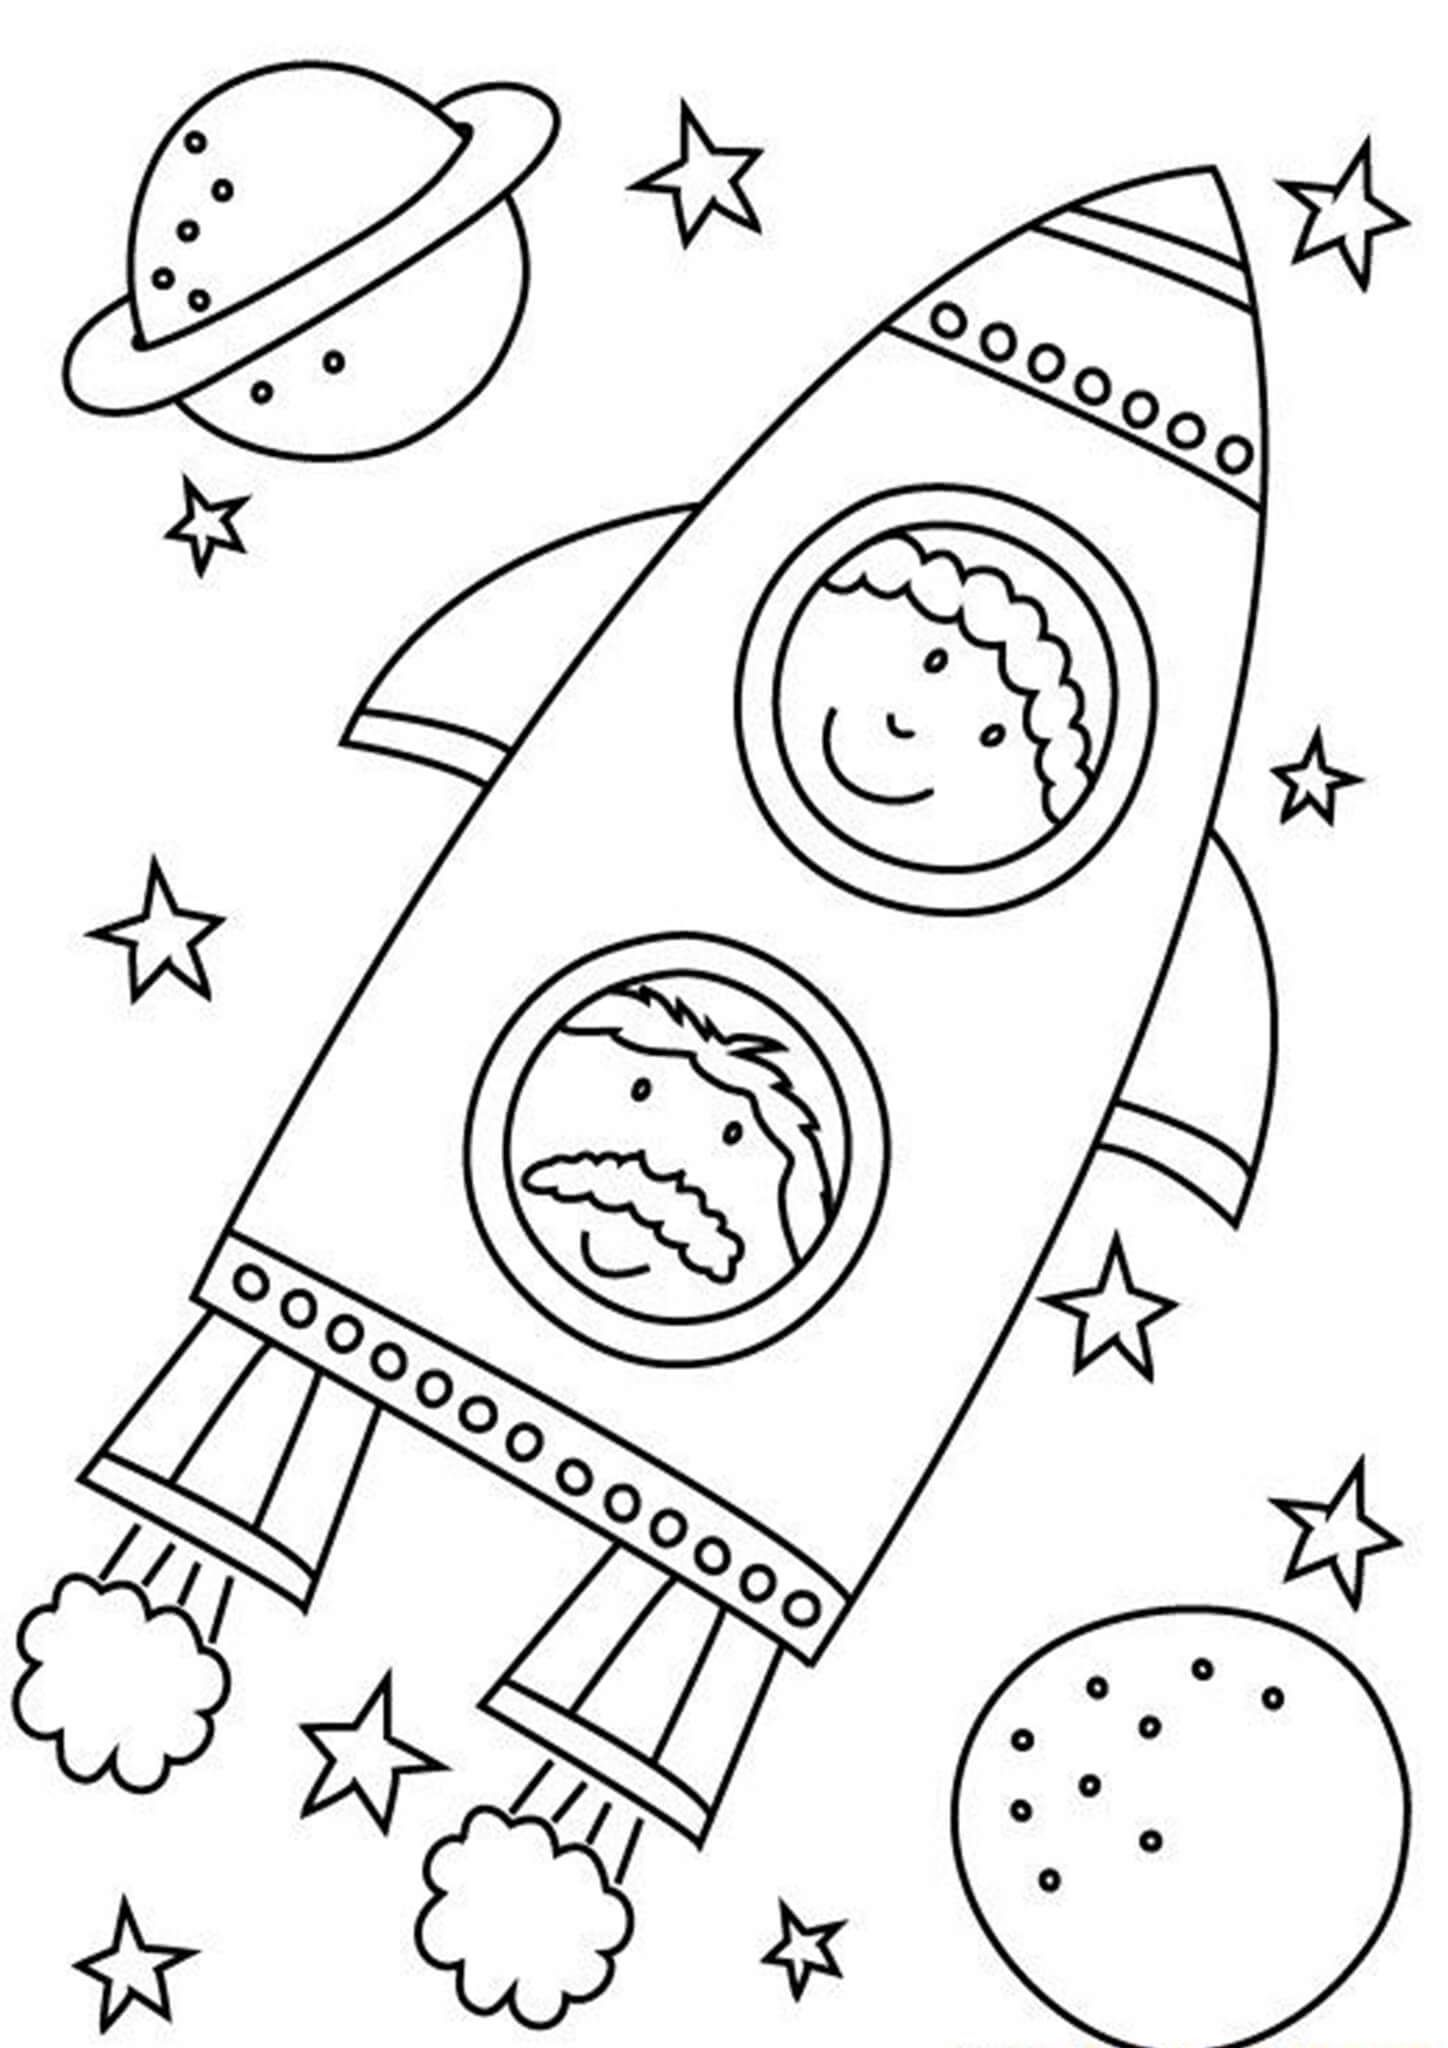 Free Easy To Print Space Coloring Pages Space Coloring Pages Space Crafts Coloring Pages